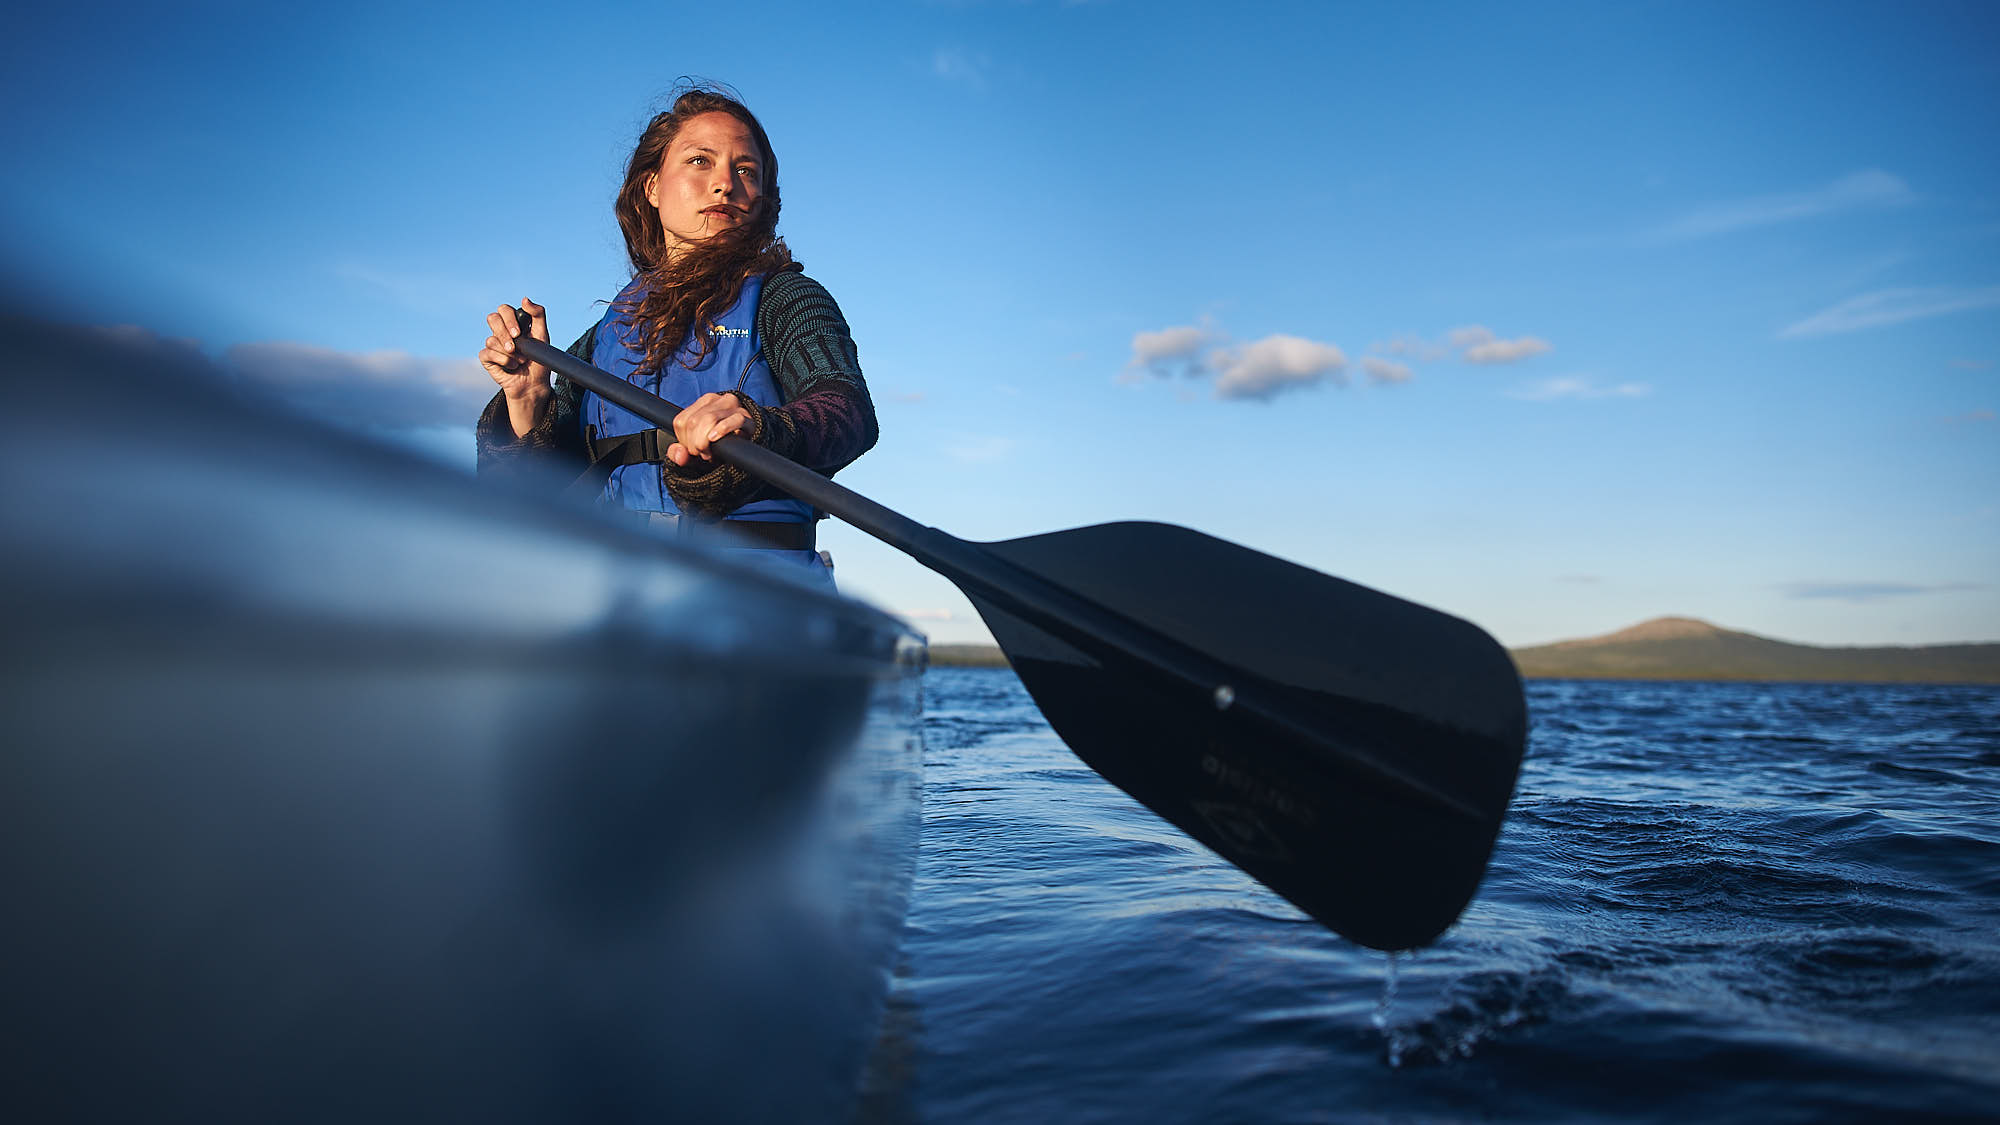 Girl with a paddle in a canoe on a lake in Norway